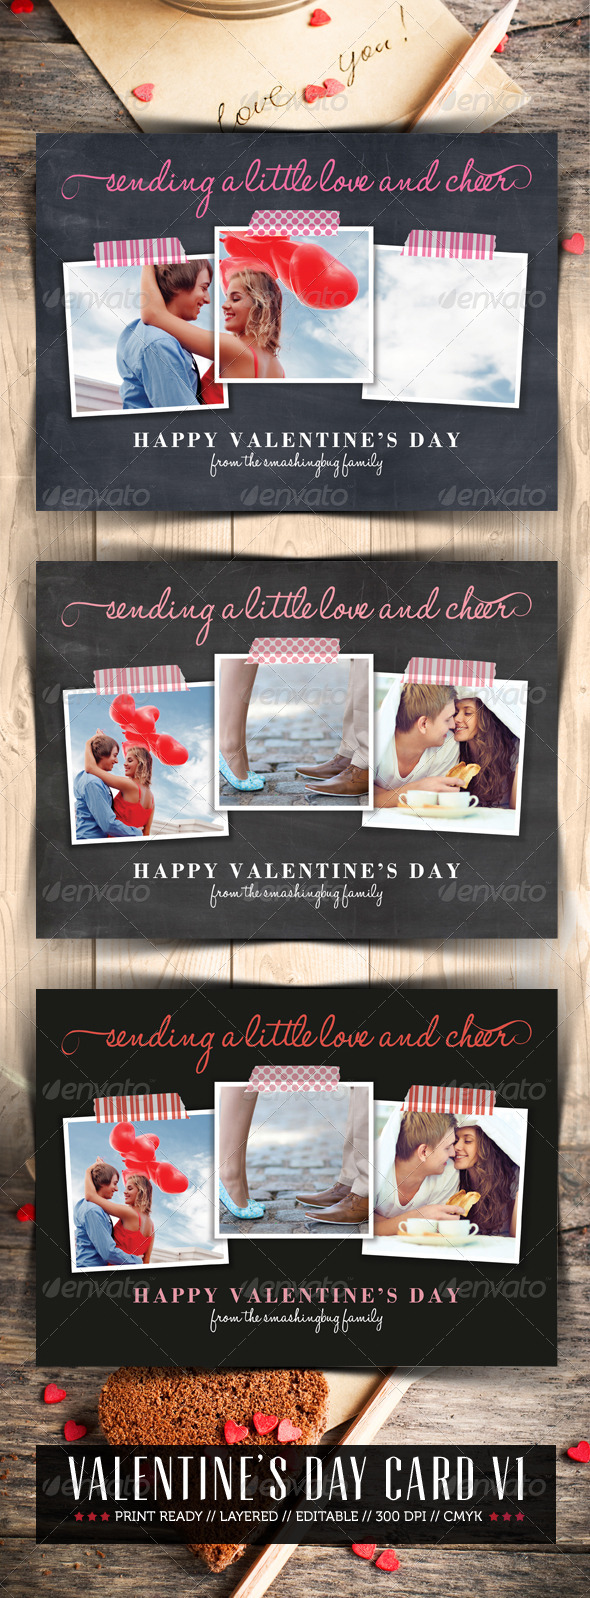 Valentine Day V1 - Greeting Cards Cards & Invites